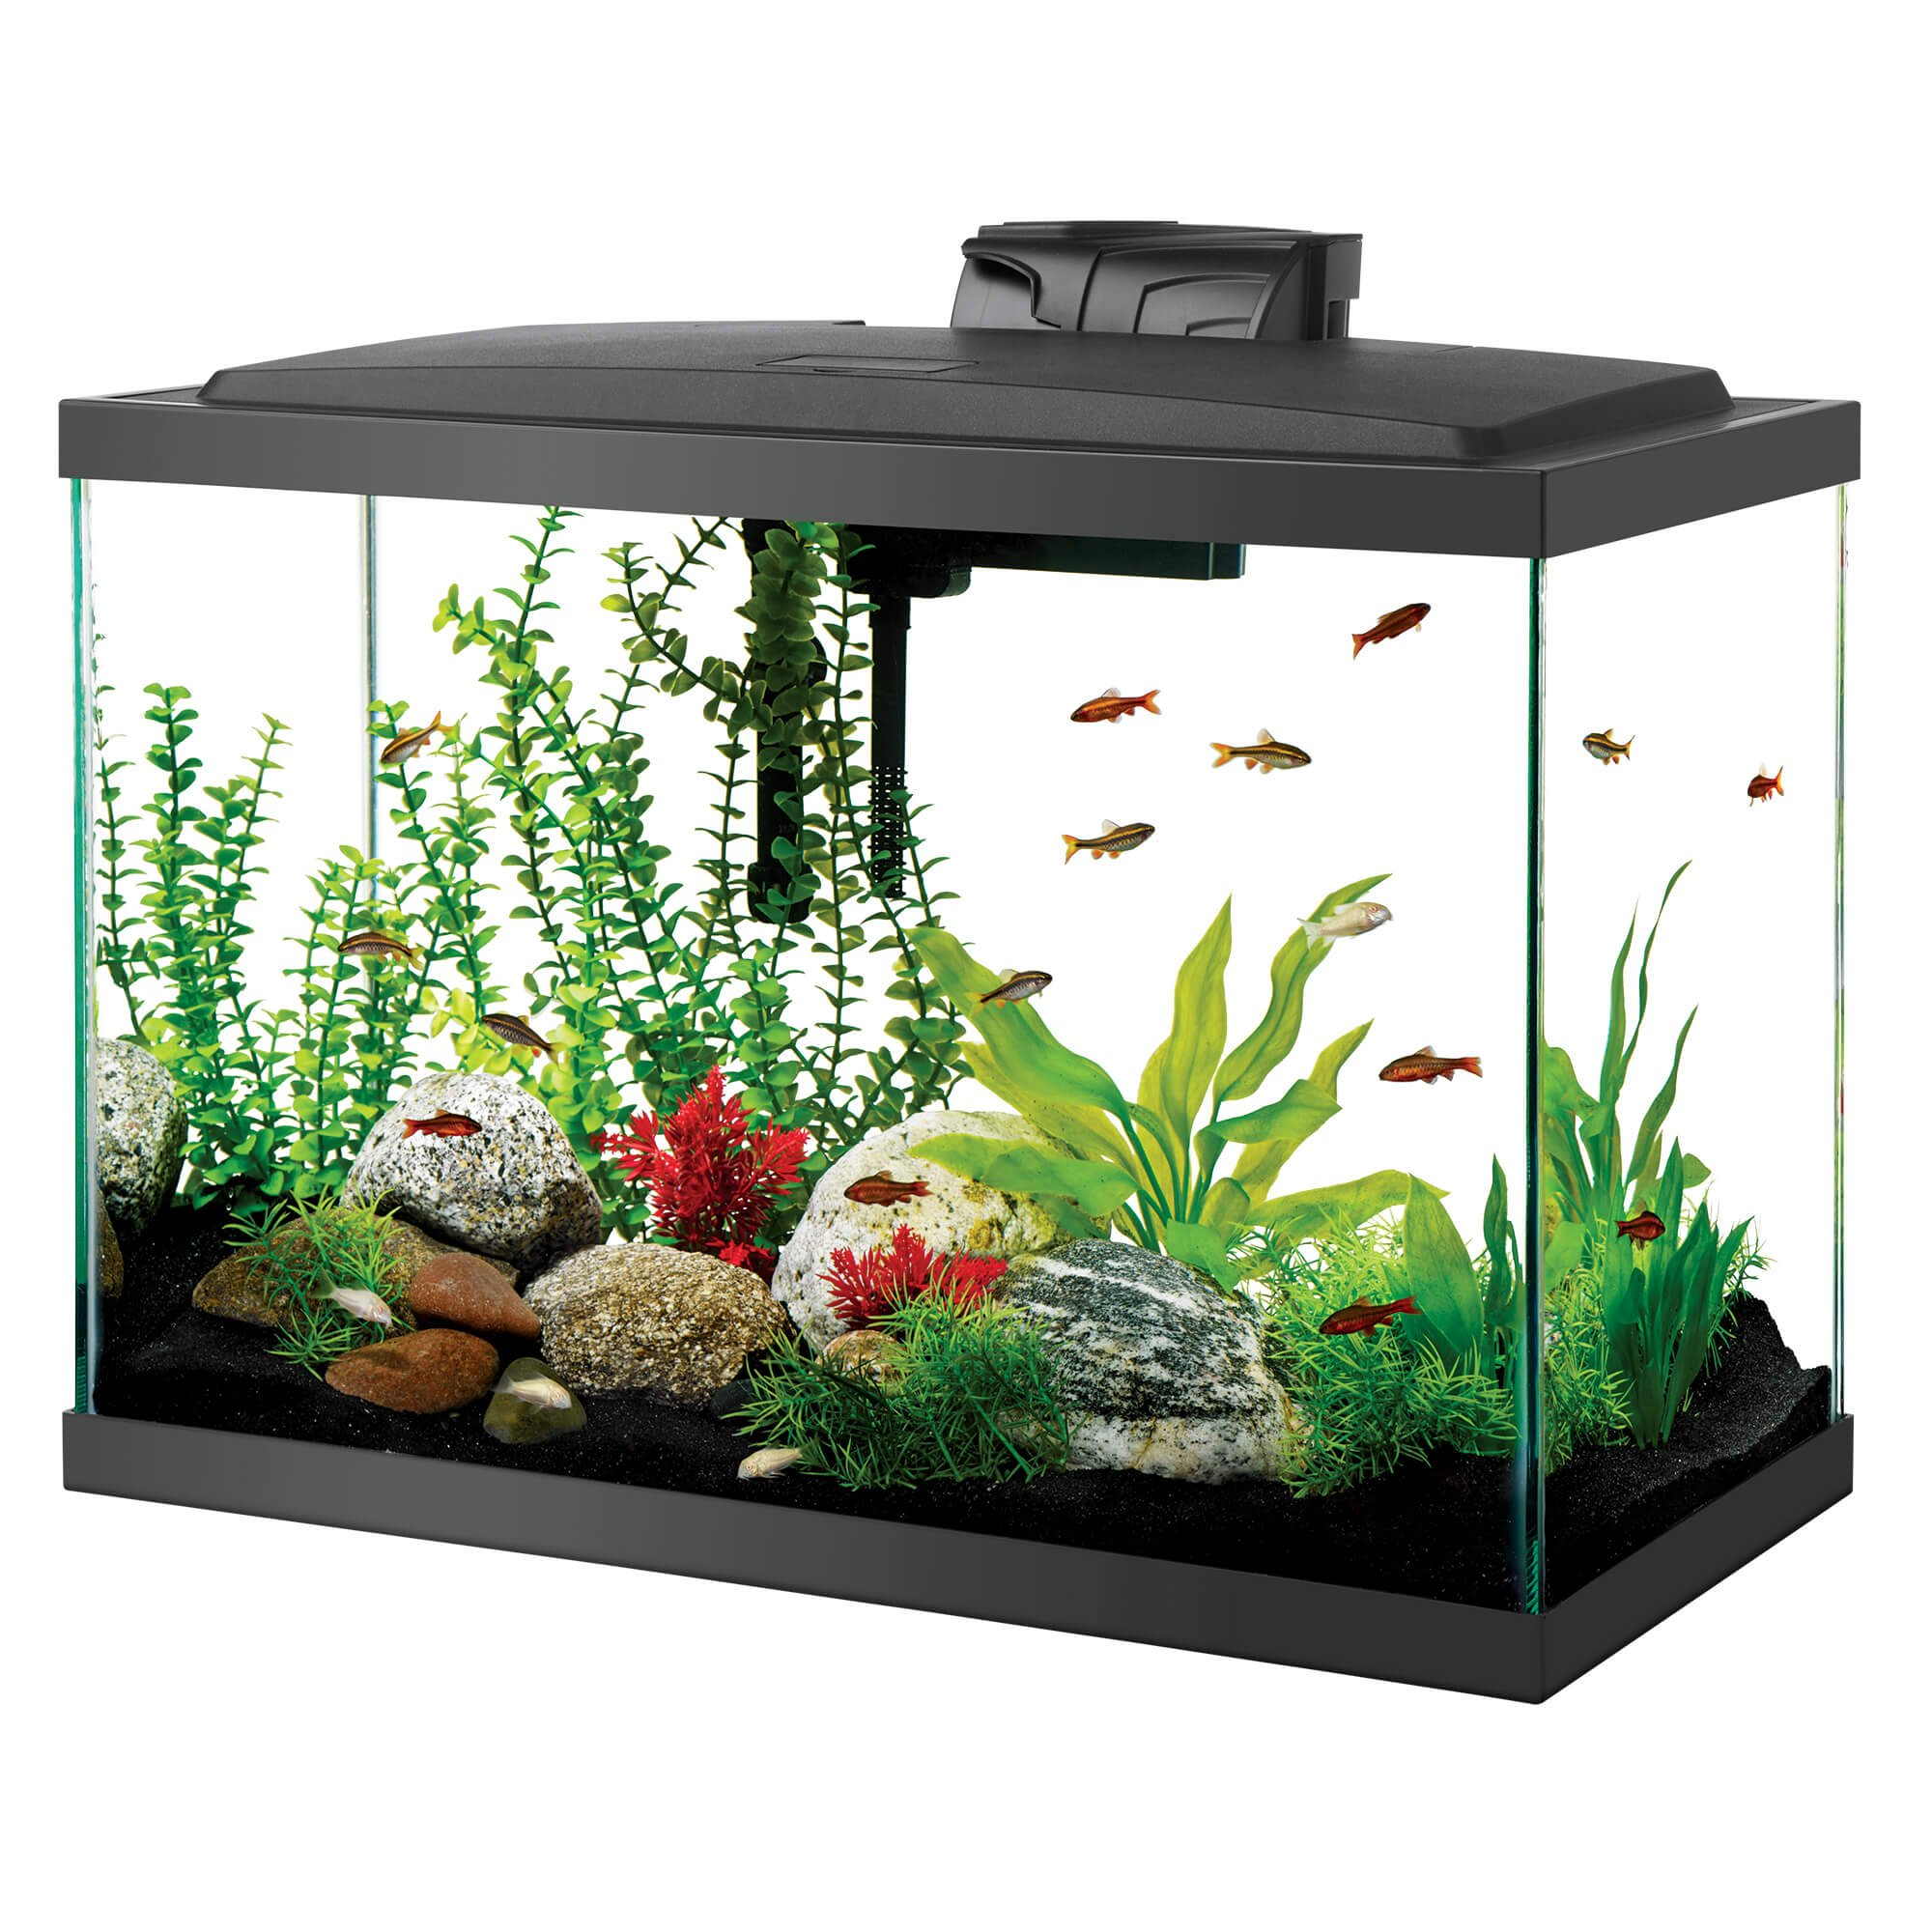 Aqueon led aquarium kit 20h black petco for Aqueon fish tank